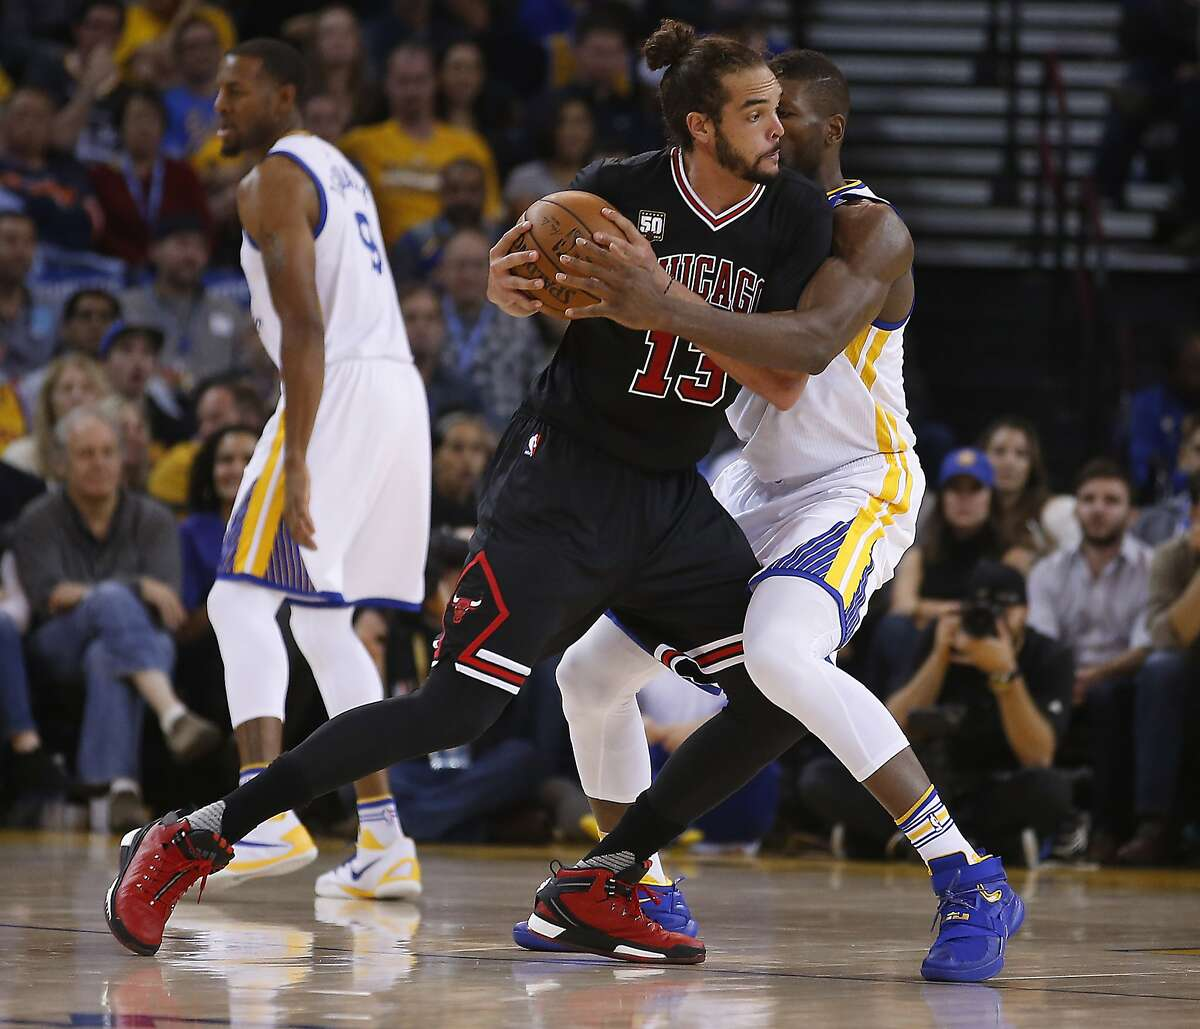 Chicago Bulls center Joakim Noah, left, tries to pass the ball against Golden State Warriors center Festus Ezeli, right, during the first half of an NBA basketball game Friday, Nov. 20, 2015, in Oakland, Calif.